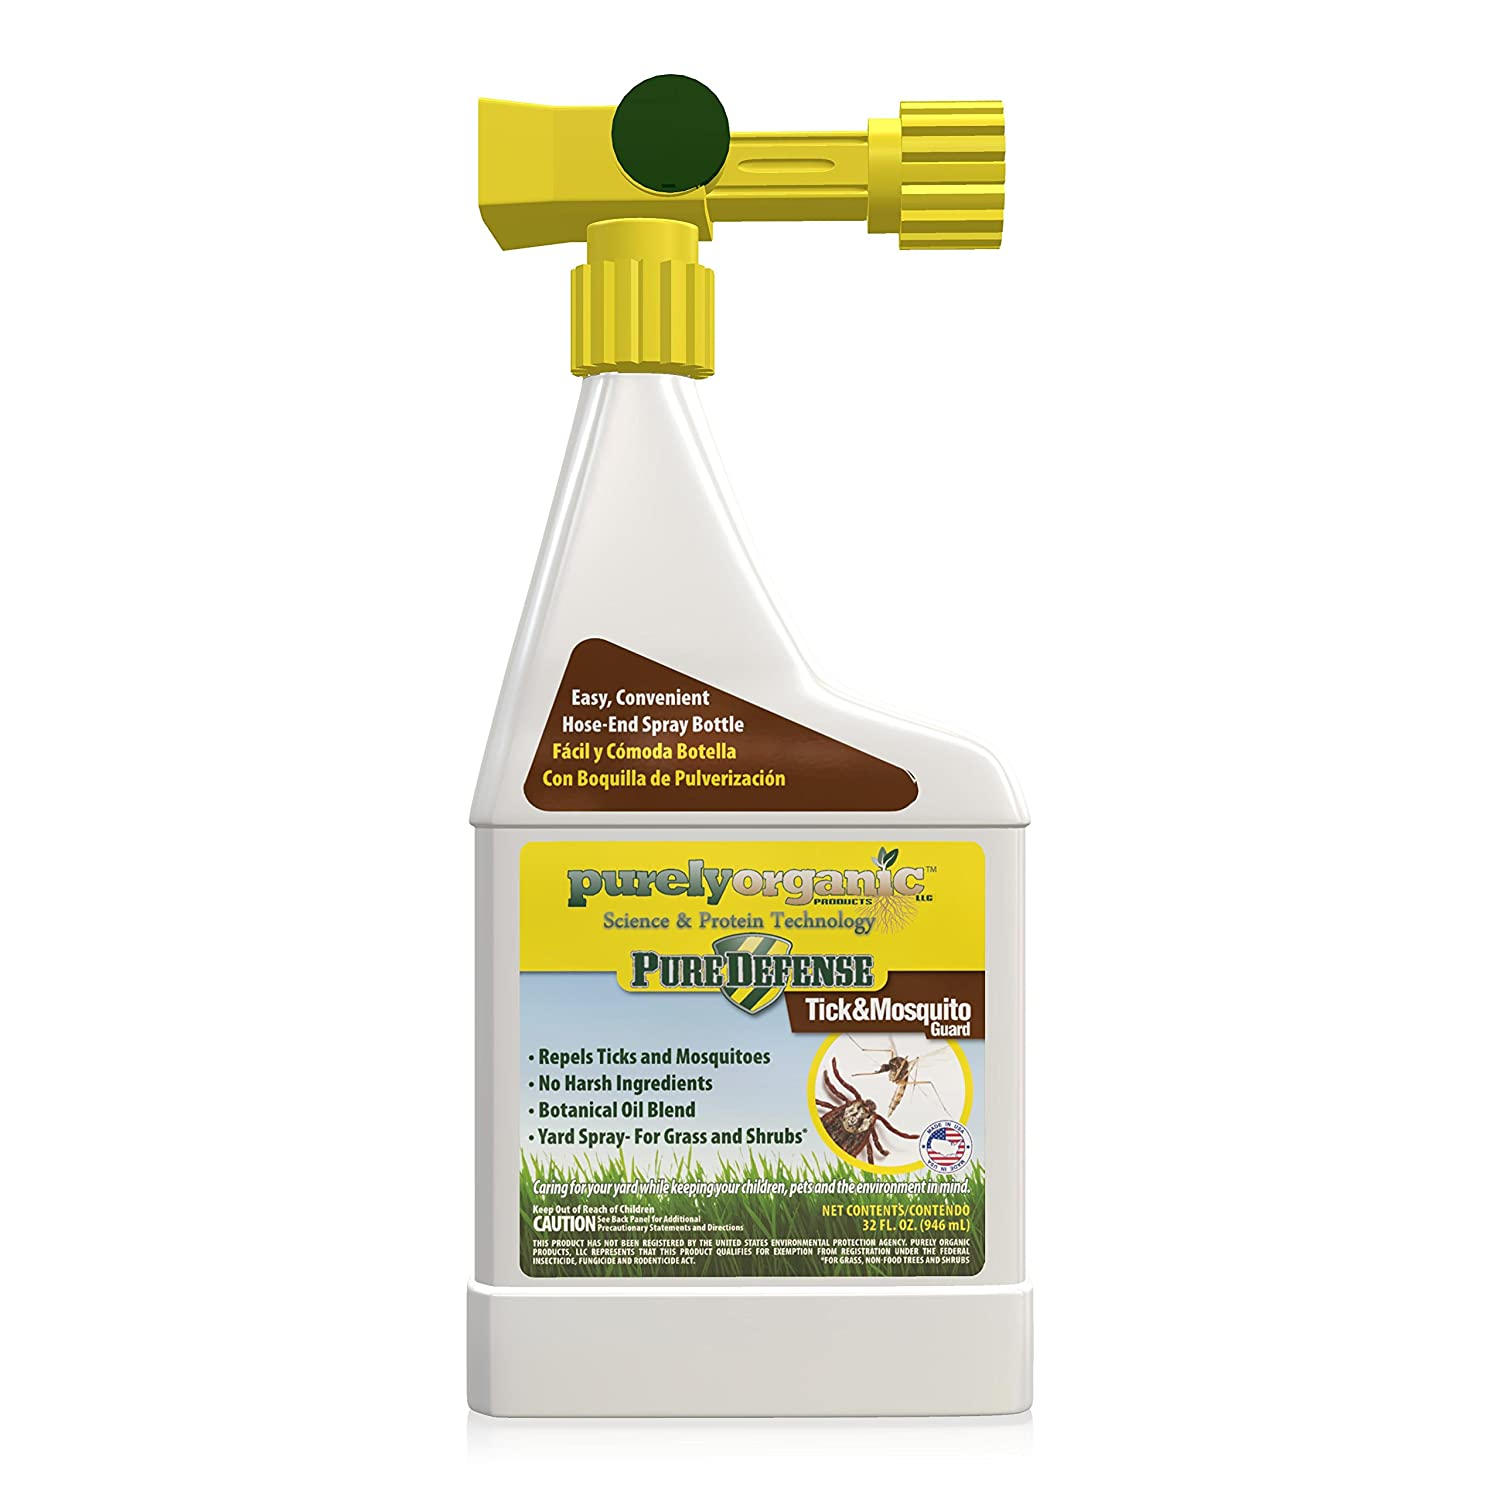 Amazon.com : 32oz Purely Organic Products LLC Pure Defense Tick & Mosquito  Guard Hose-End Tick & Mosquito Repellent. : Garden & Outdoor - Amazon.com : 32oz Purely Organic Products LLC Pure Defense Tick